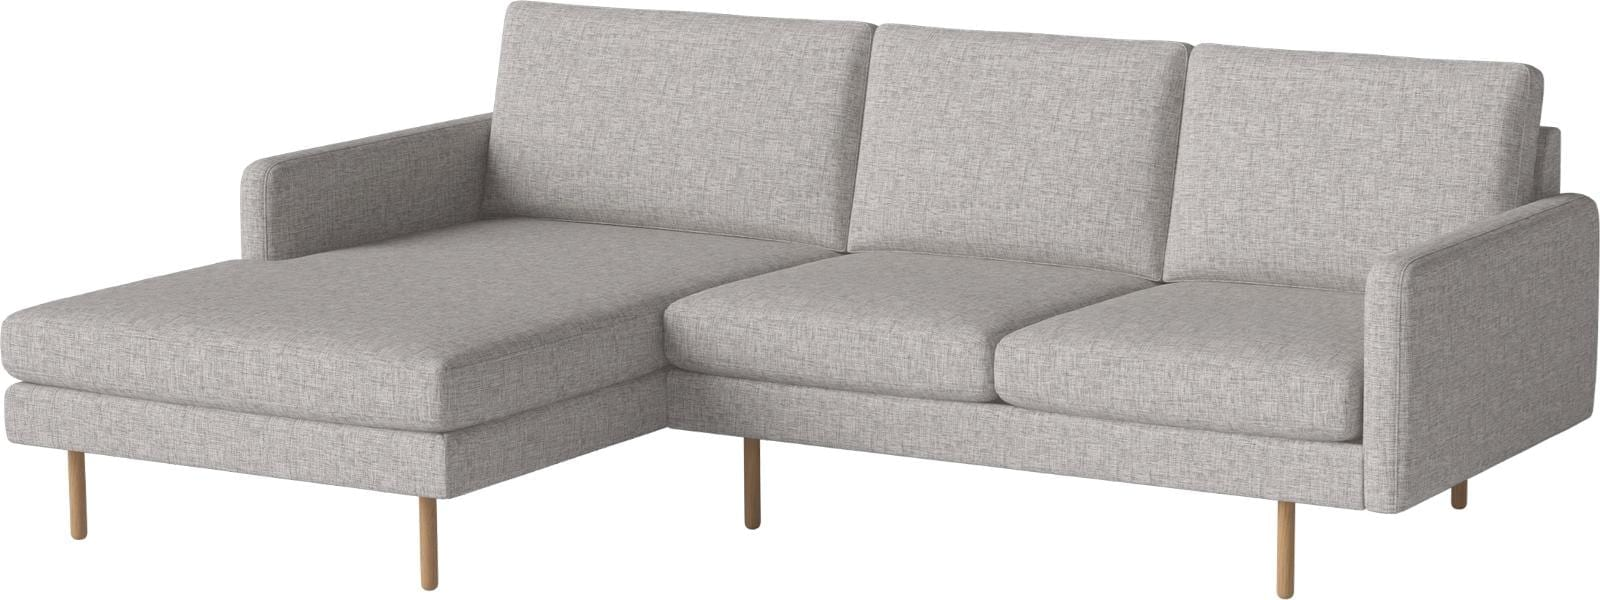 SCANDINAVIA REMIX 3 seater sofa with chaise longue